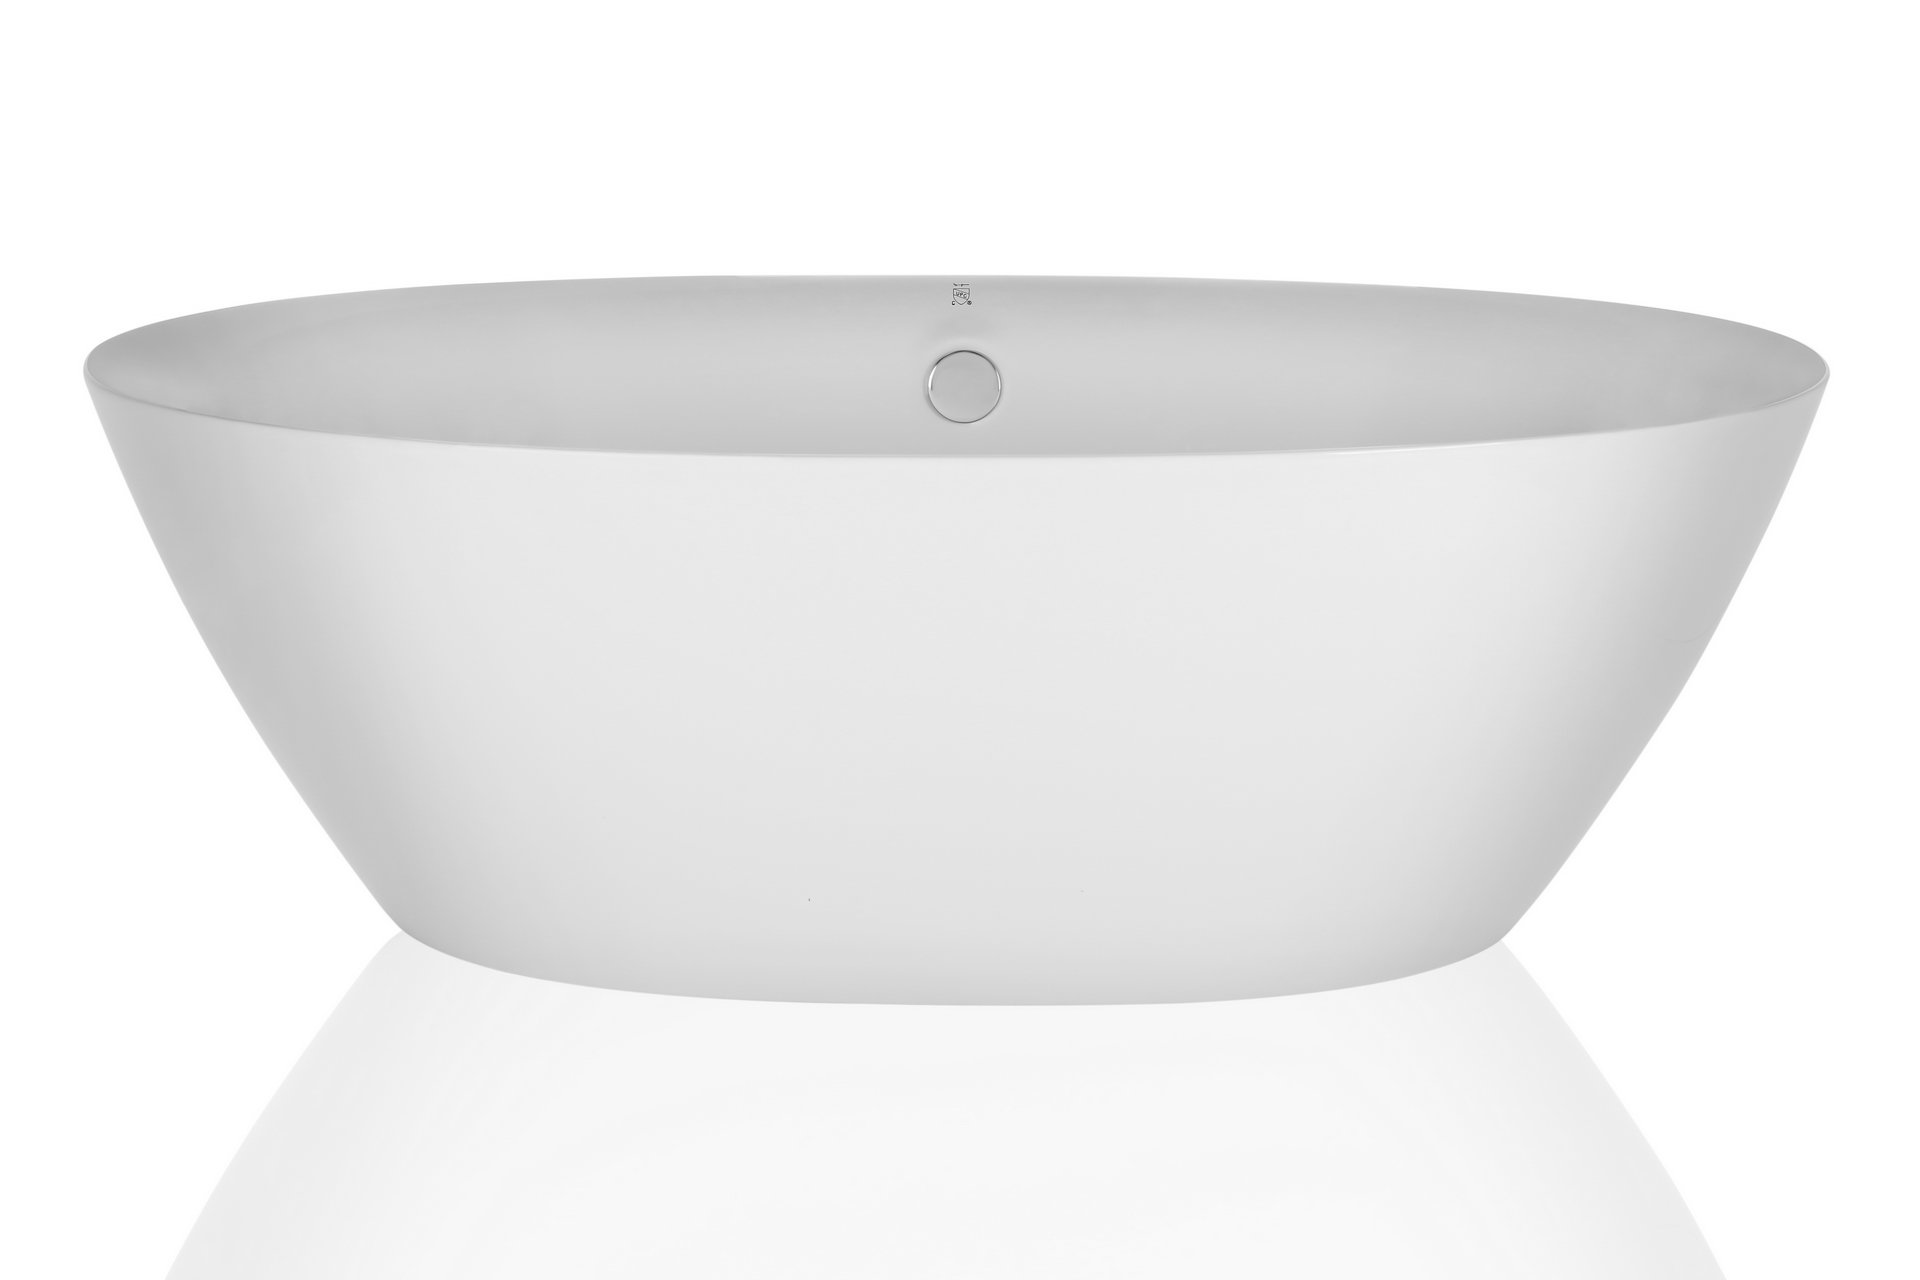 Empava 71'' Luxury Stand Alone Acrylic Soaking SPA Tub Modern Freestanding Bathtubs with Custom Contemporary Design EMPV-FT1503